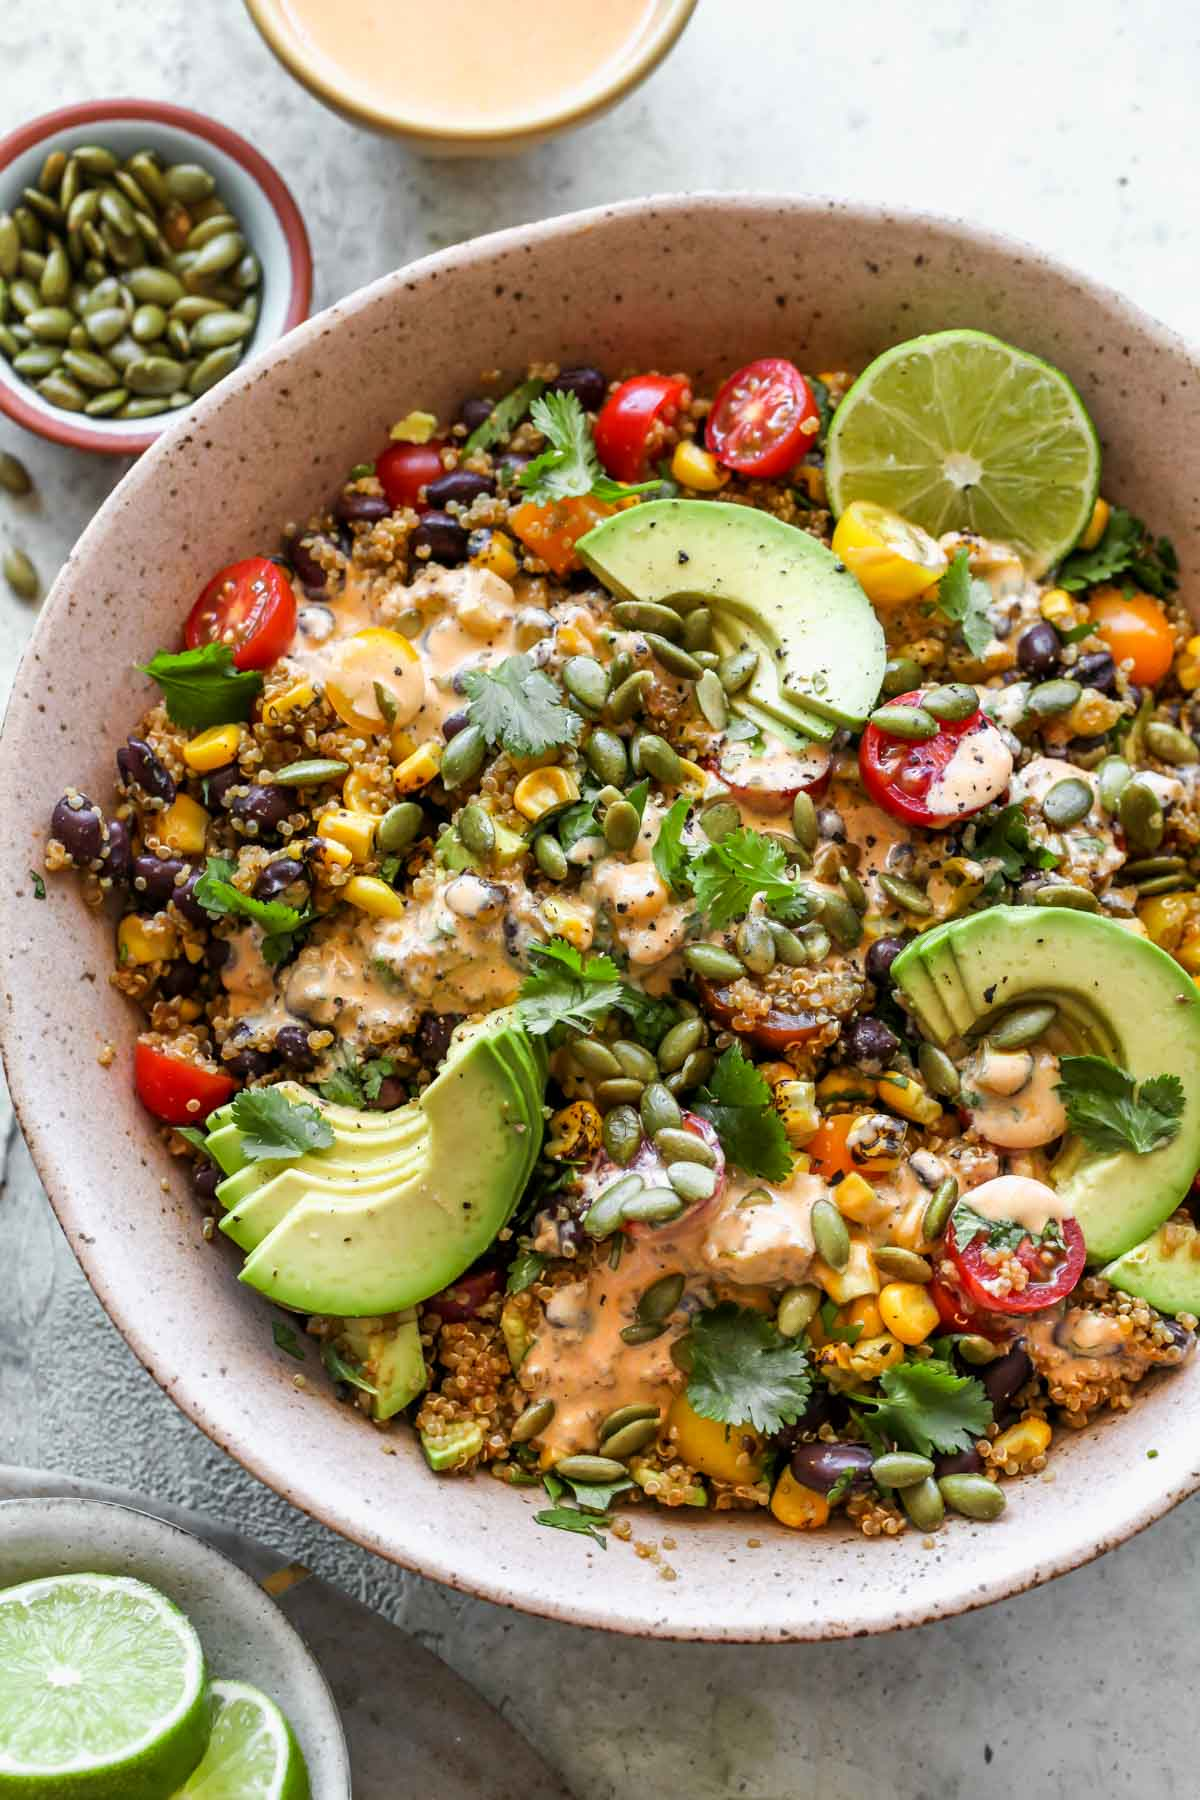 Southwest quinoa salad styled in a pink bowl topped with avocado slices